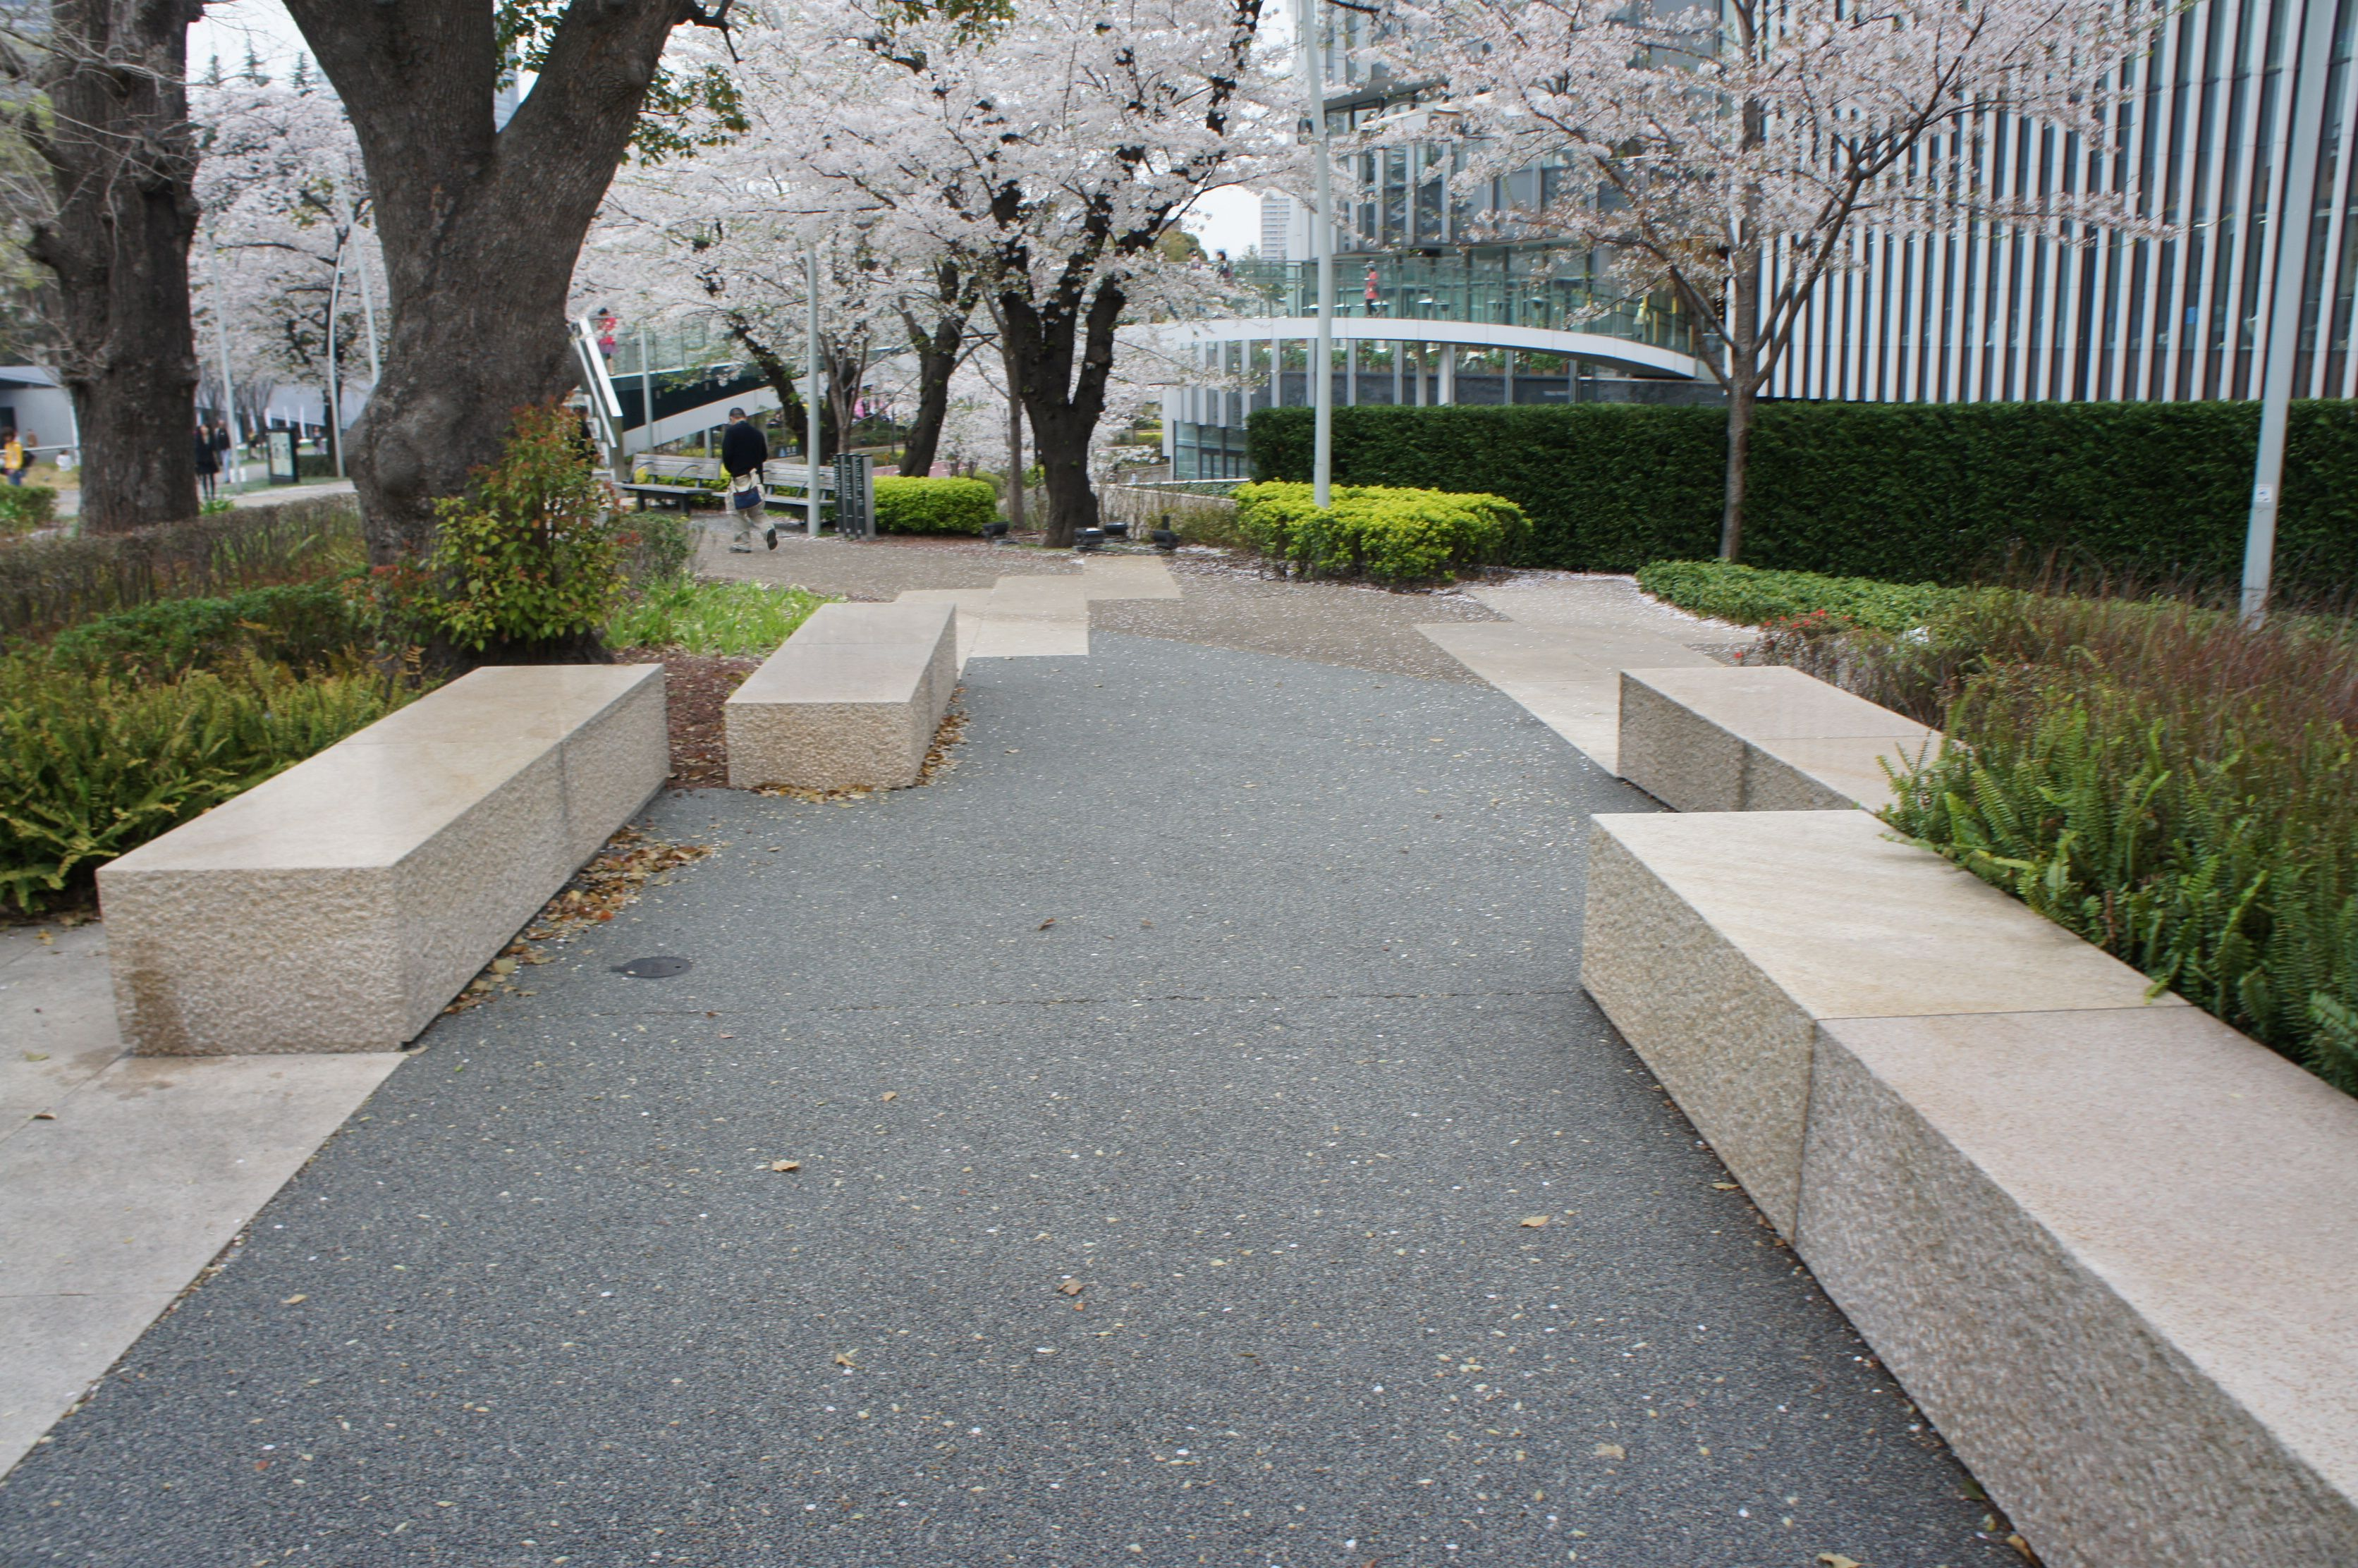 Pin By Slow Geng On Landscape L Street Furniture Landscape Architecture Wall Seating Street Furniture